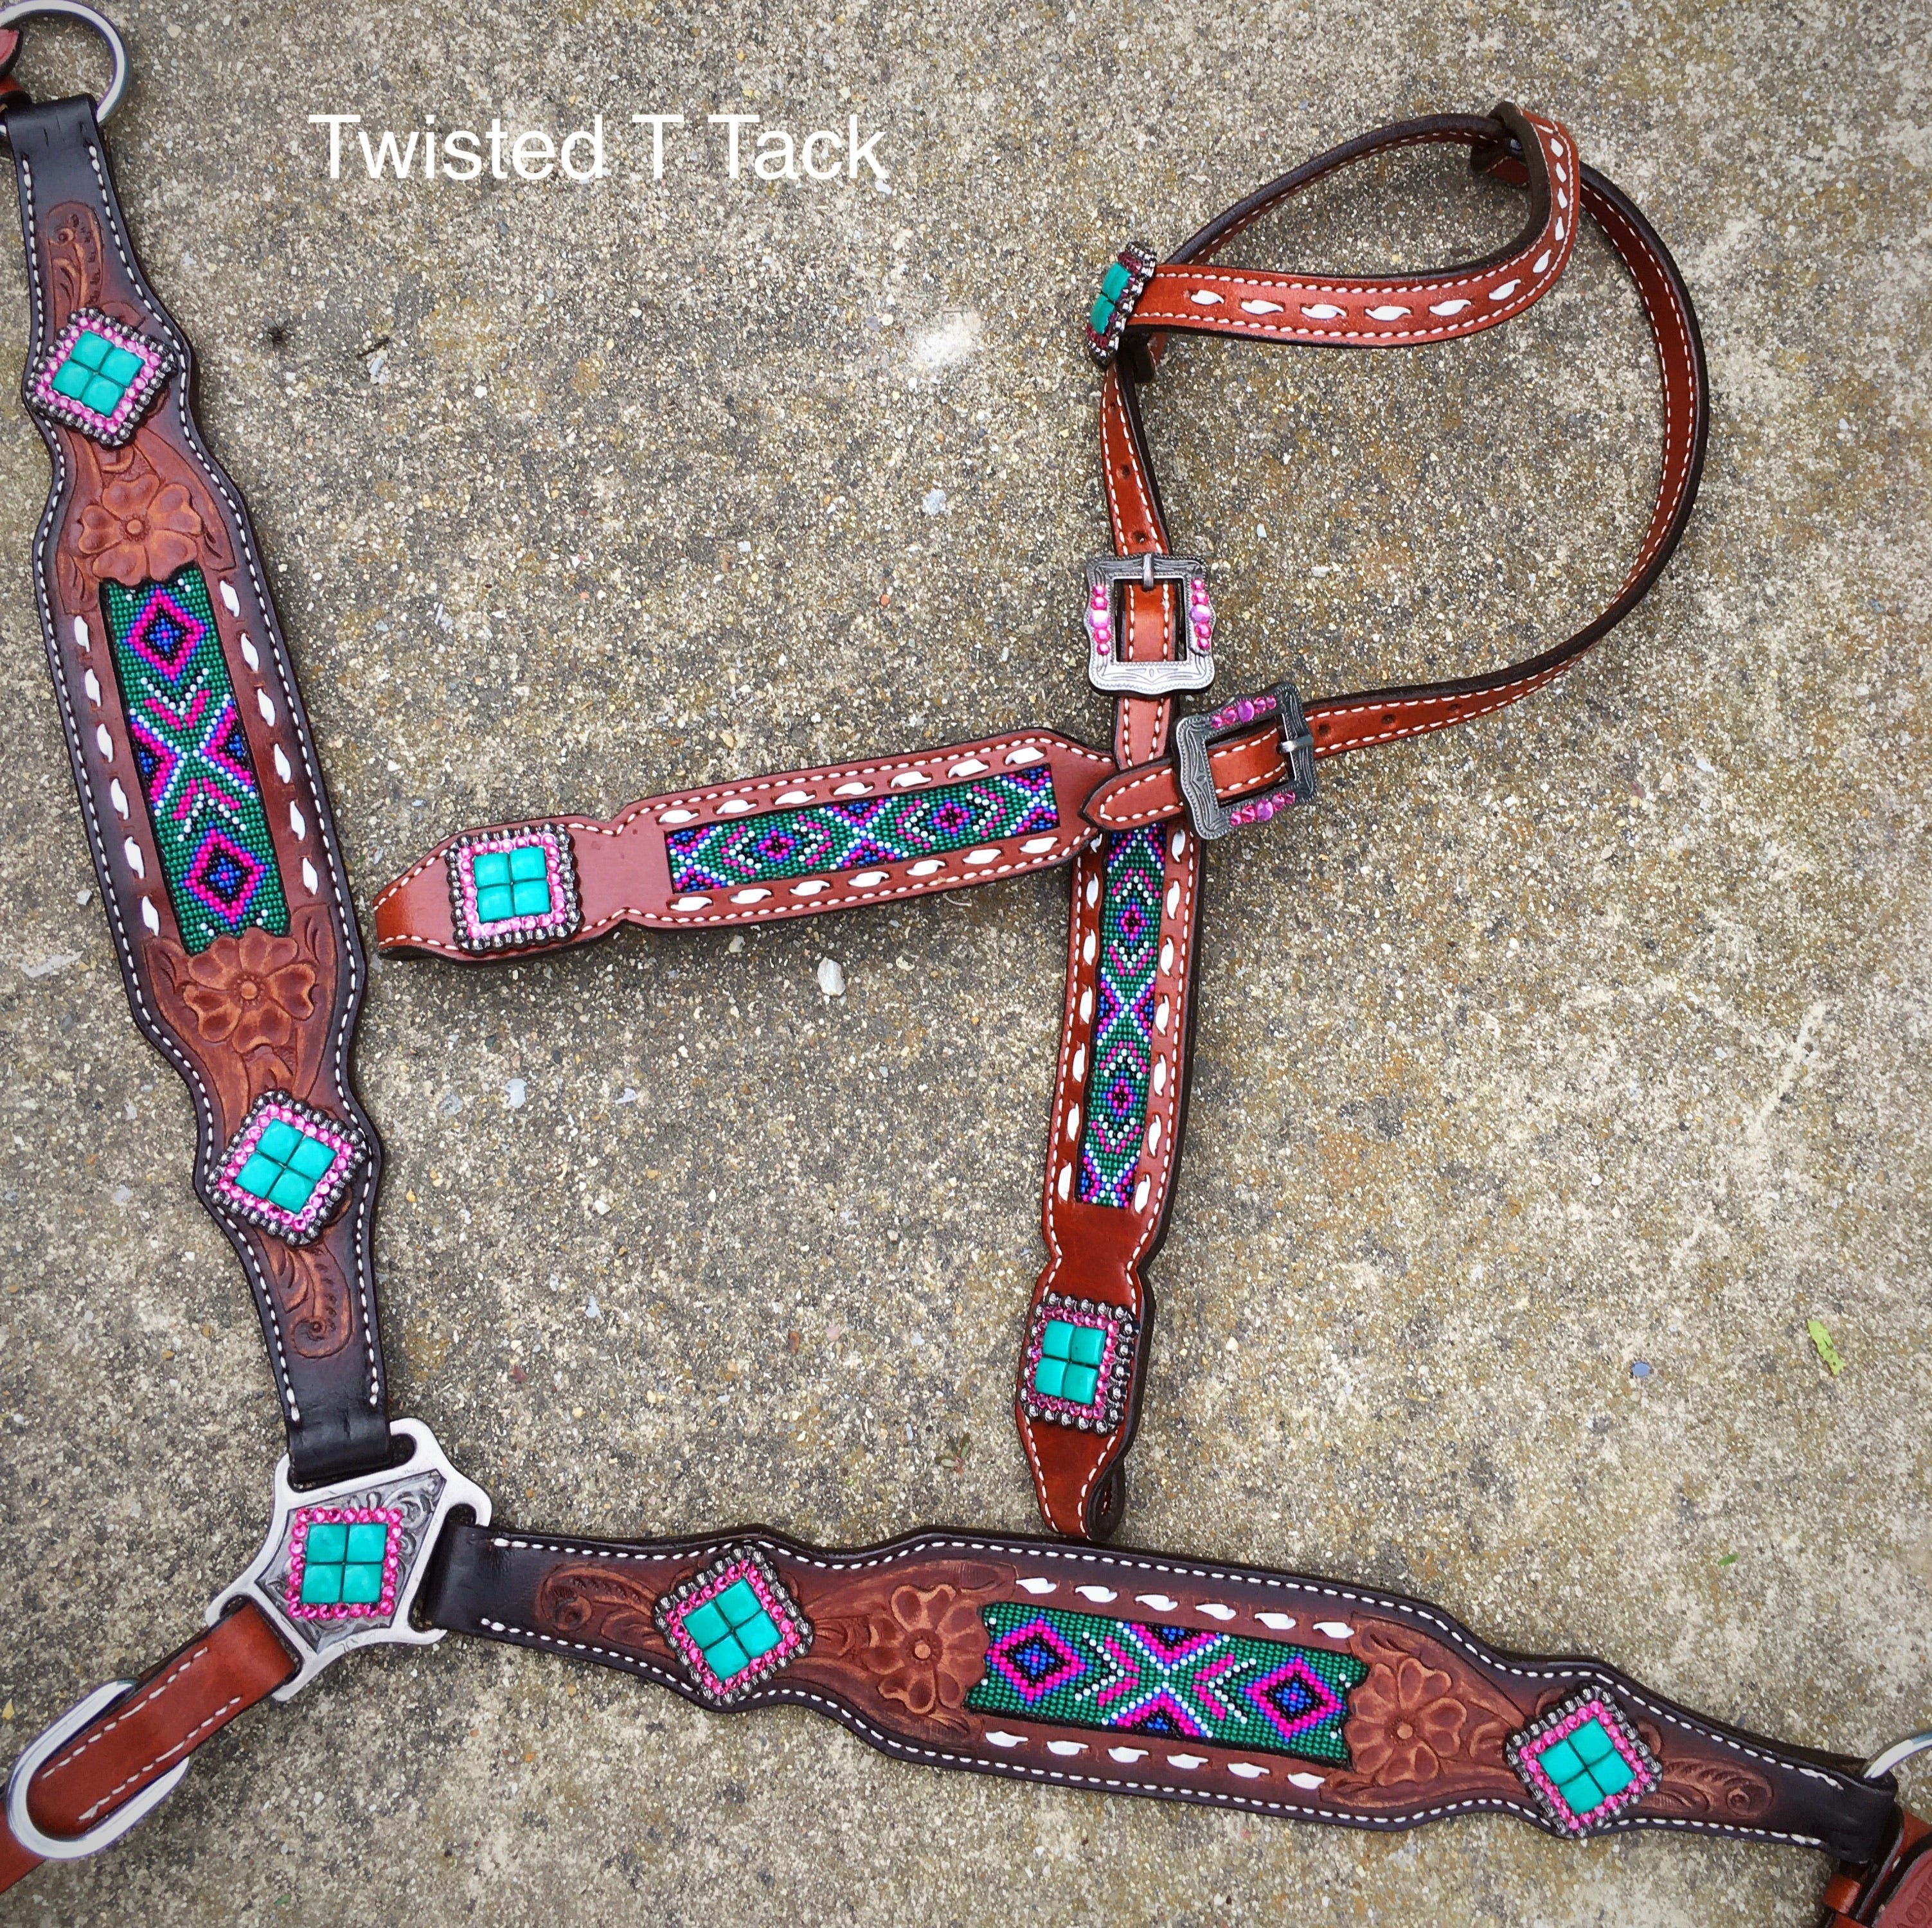 Teal And Pink Beaded Tack Set Twisted T Tack